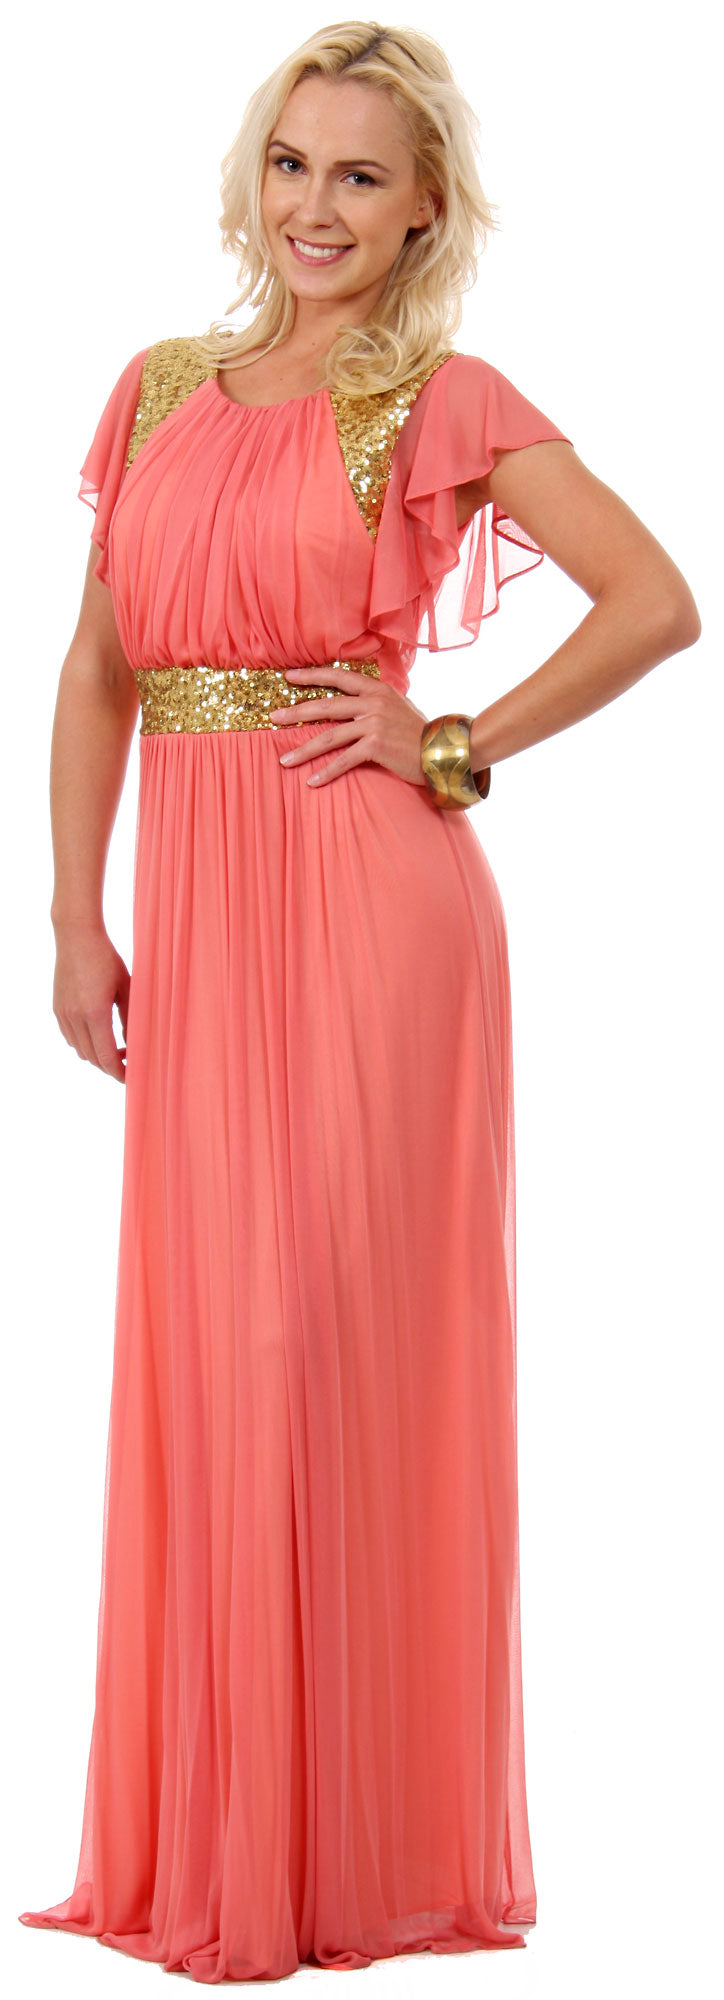 Image of Ruffle Sleeves Long Formal Bridesmaid Dress With Sequins in Coral